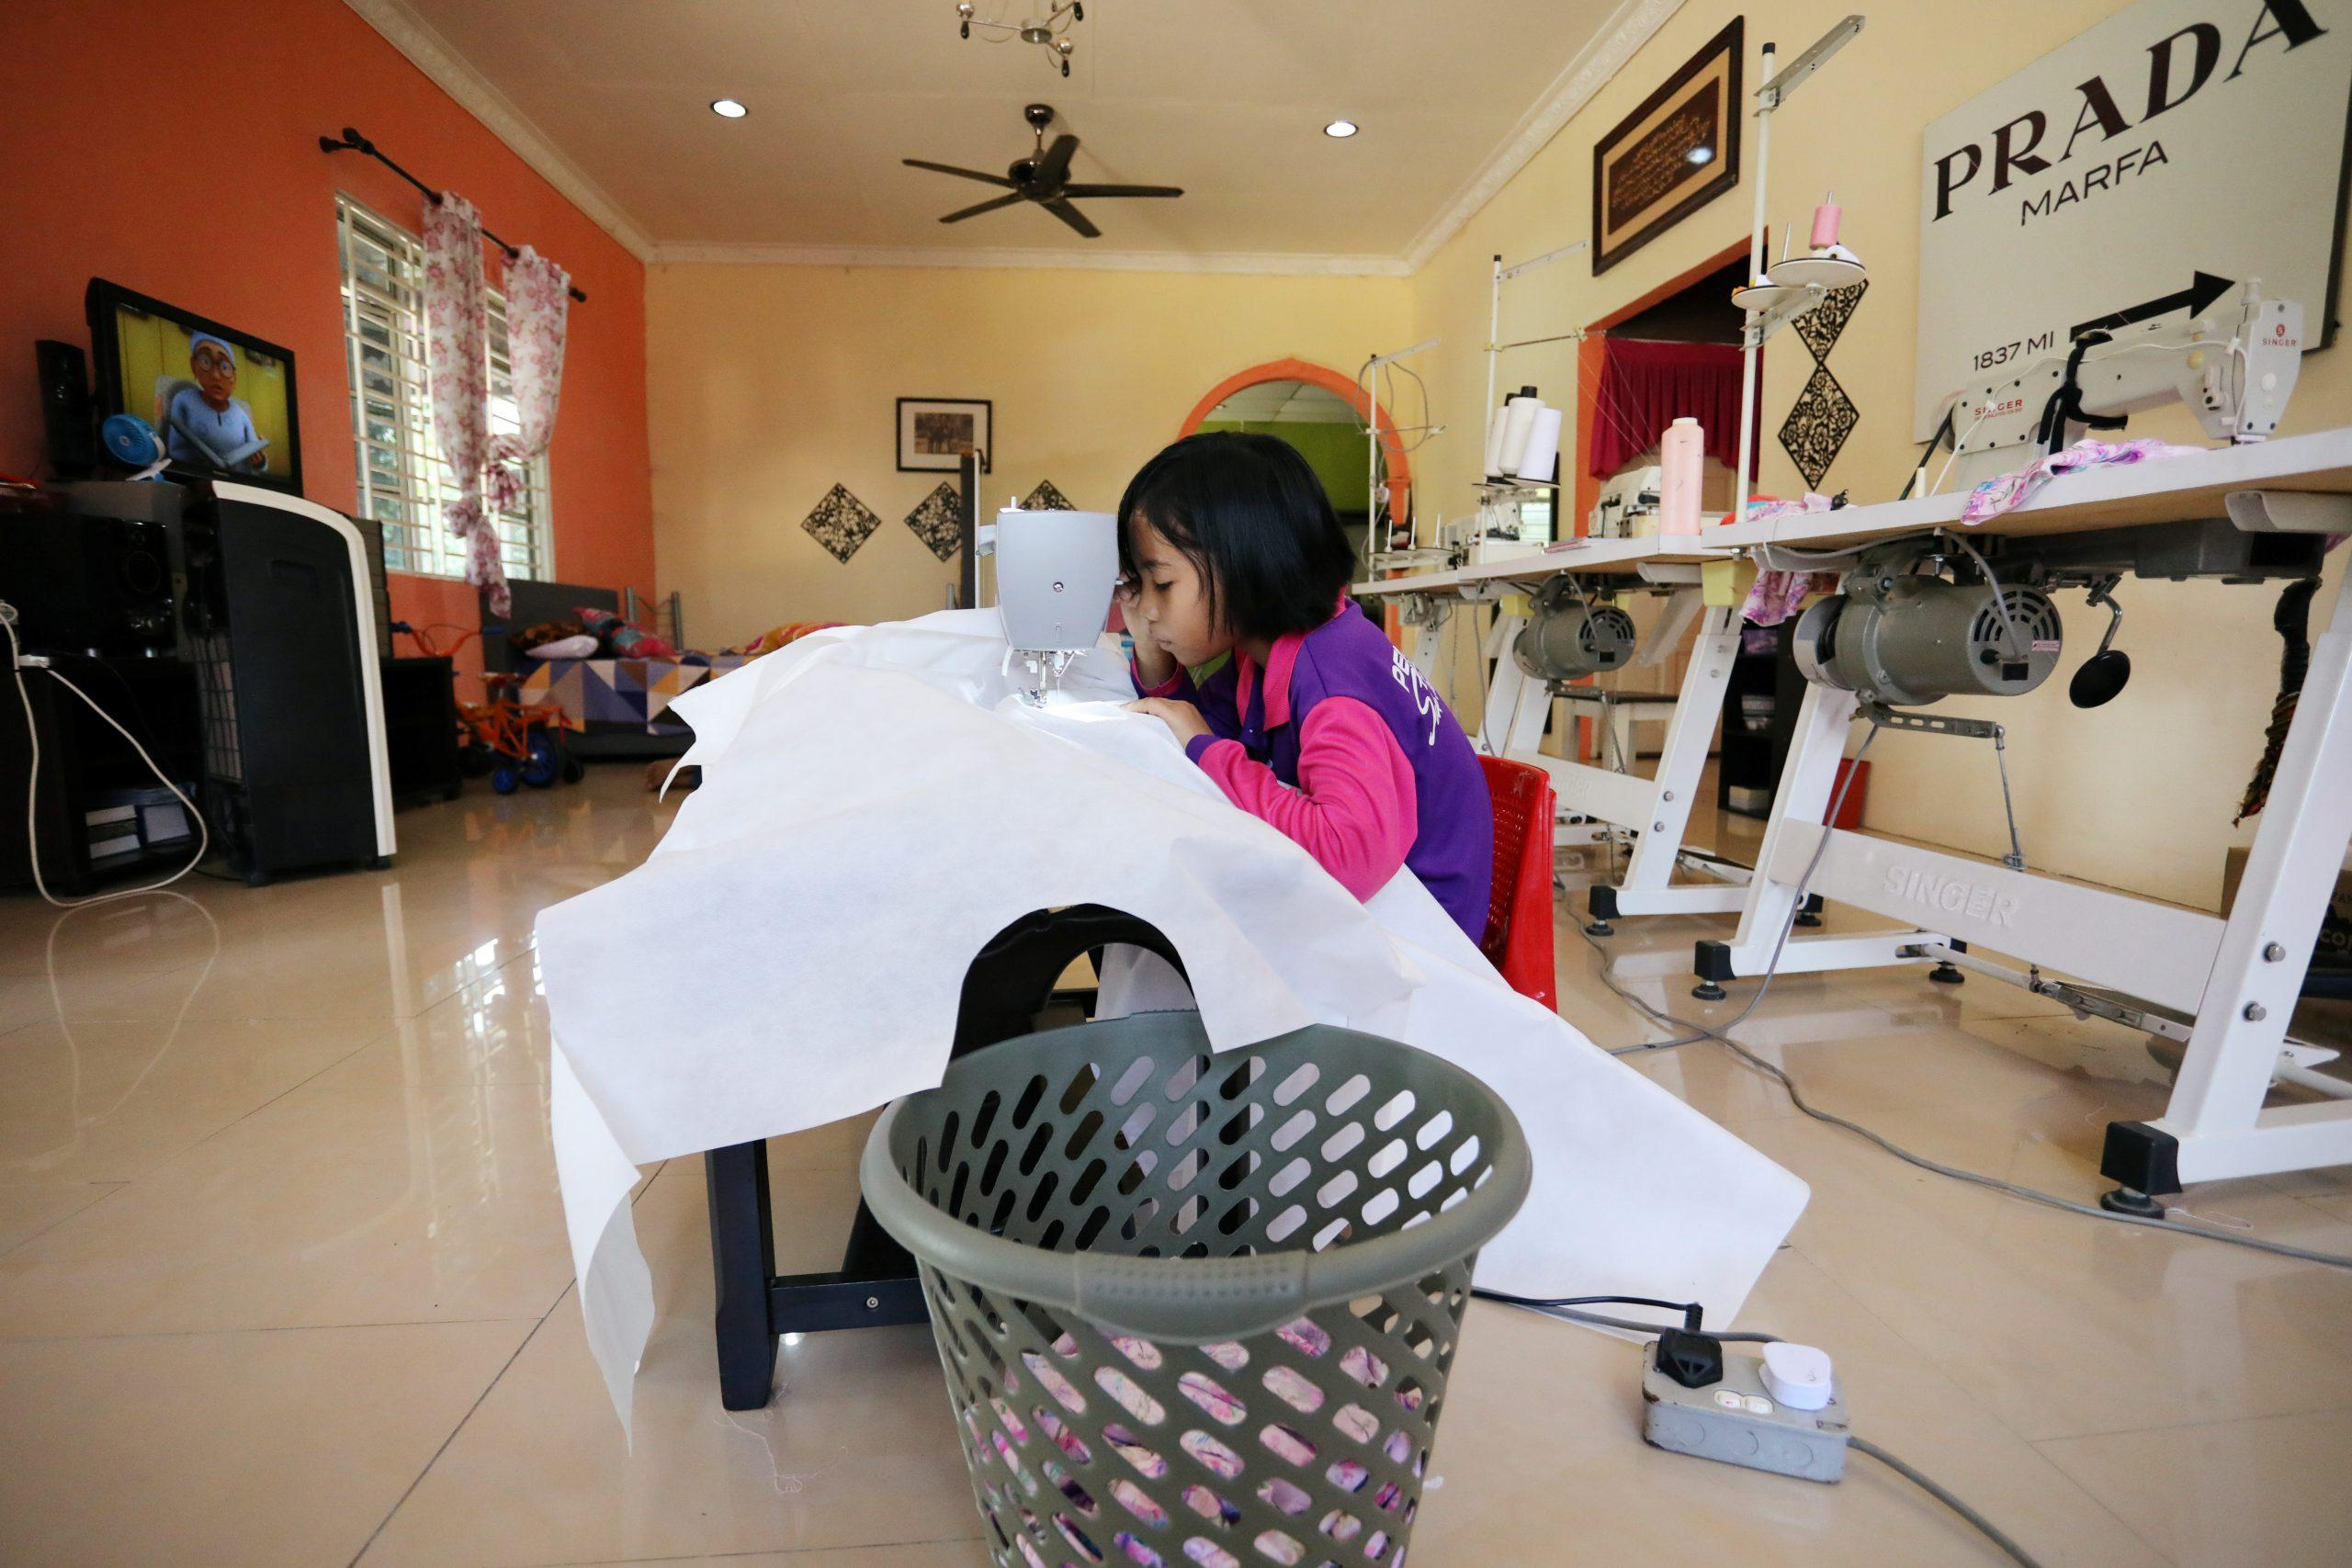 For Malaysian schoolgirl, homework is sewing PPE gowns to help beat coronavirus - GLOBAL HEROES MAGAZINE